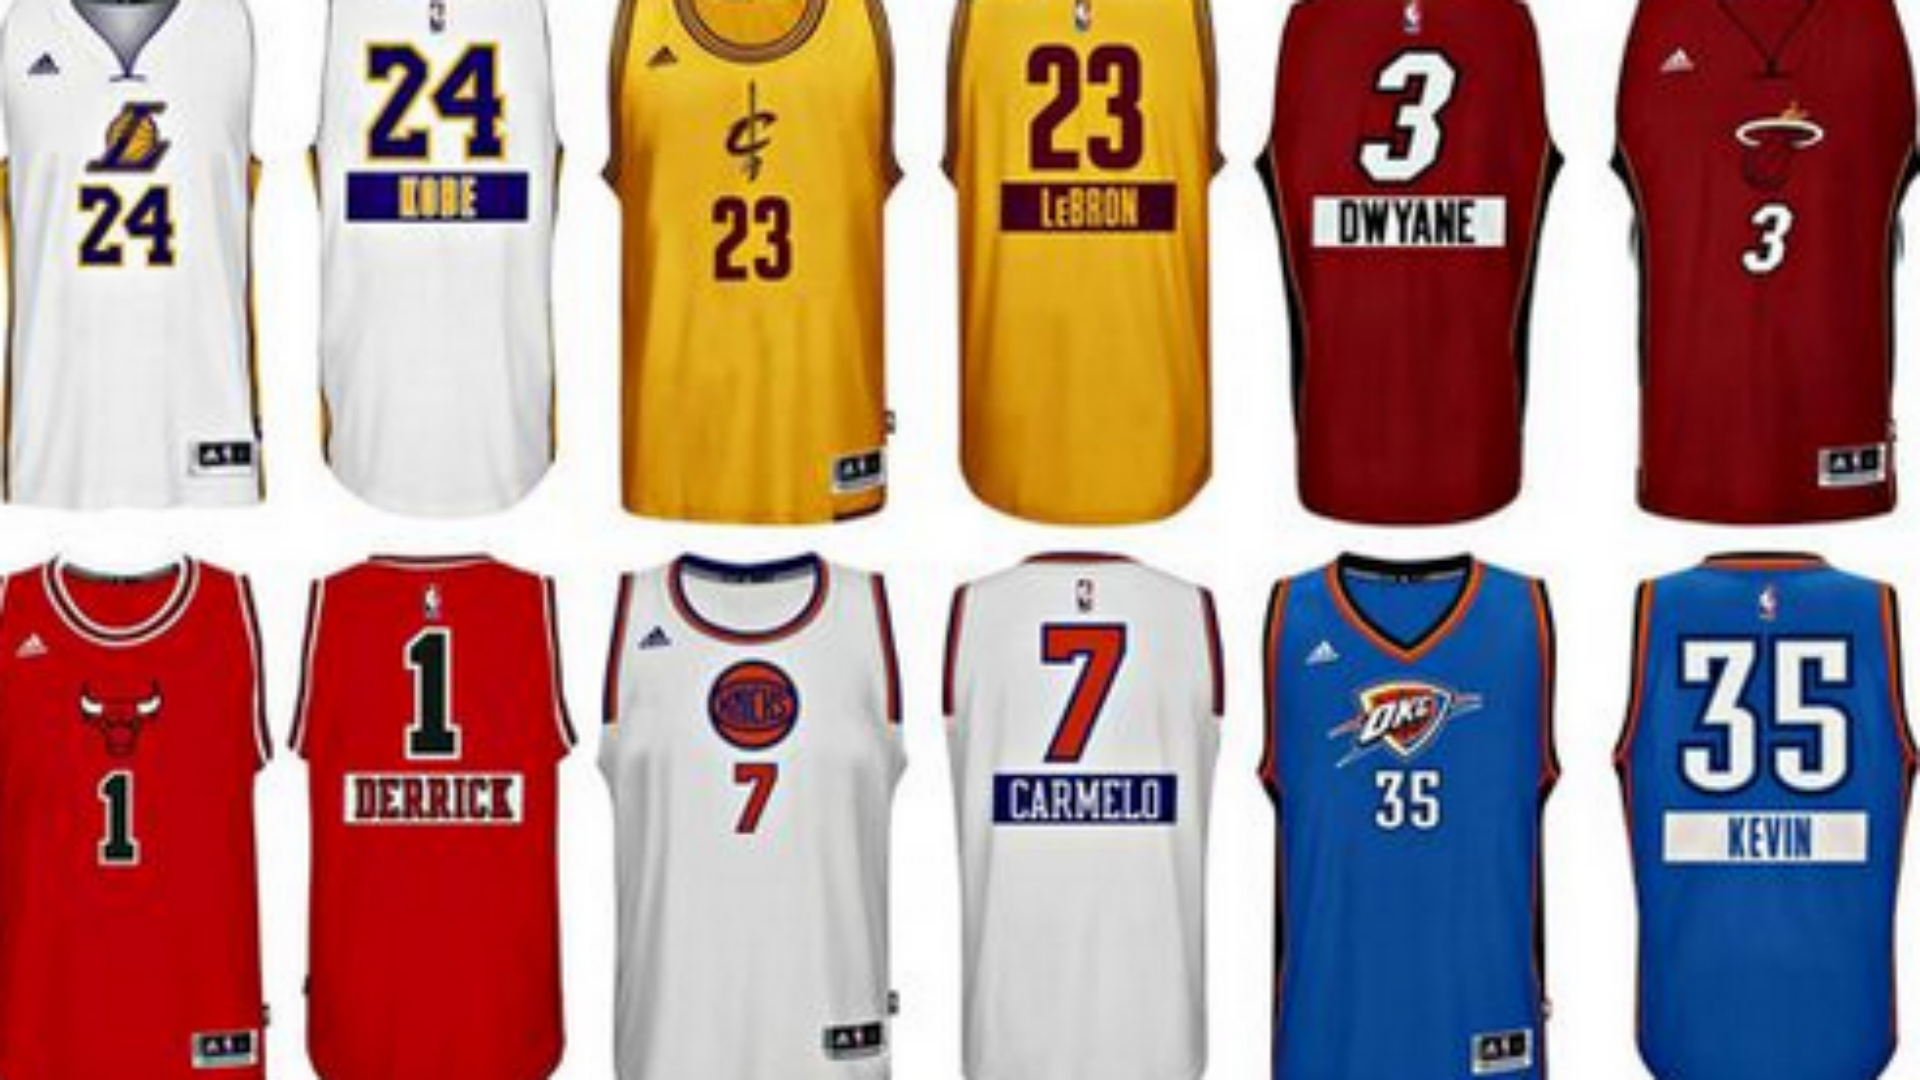 Christmas Jerseys.Nba Christmas Jerseys Have First Names On Back Sporting News